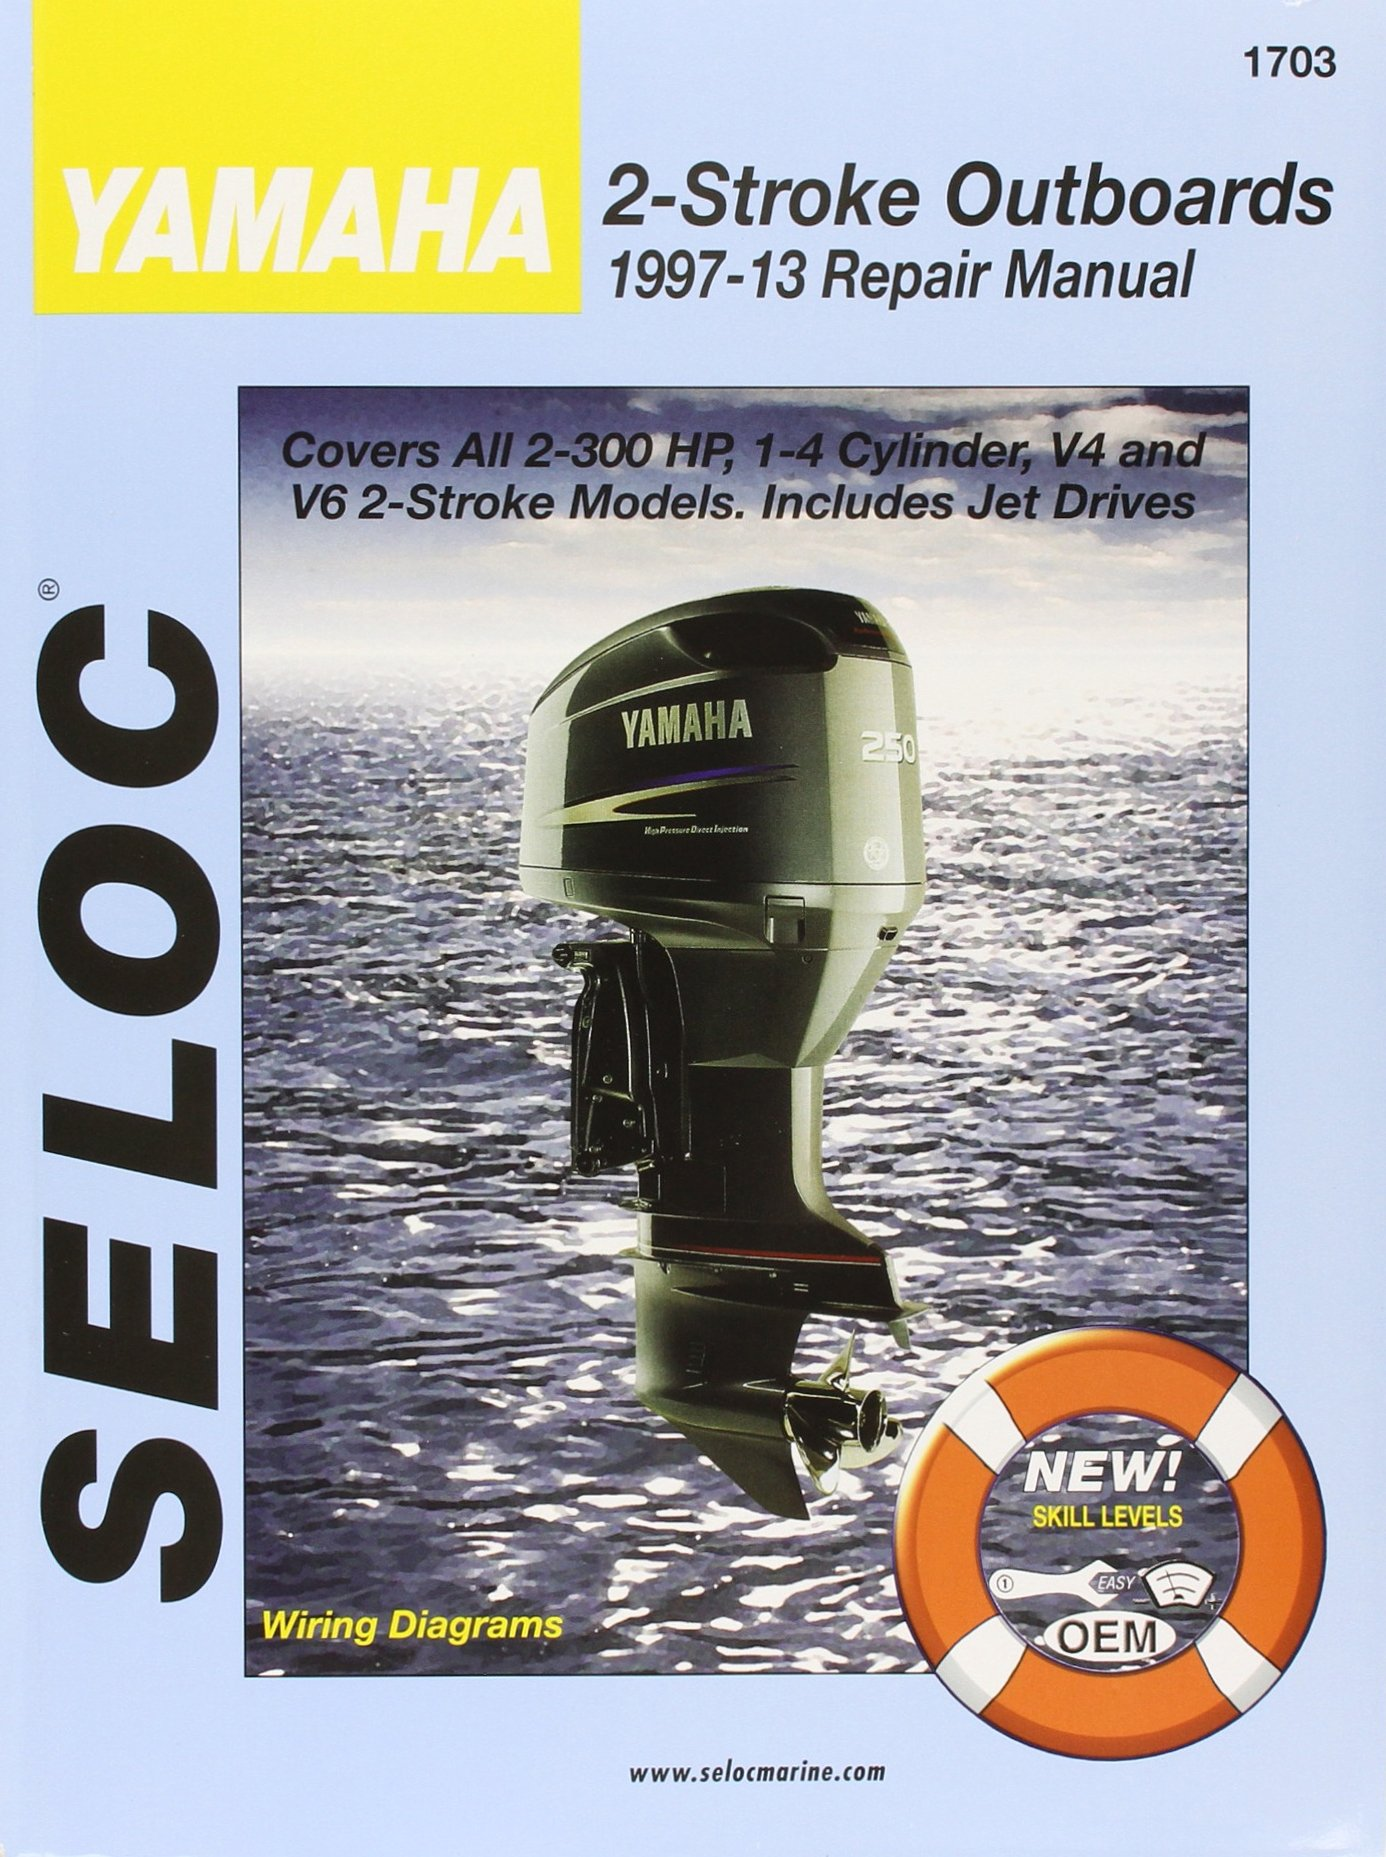 Yamaha Outboards 1997 - 2014 2 Stroke by Seloc Marine